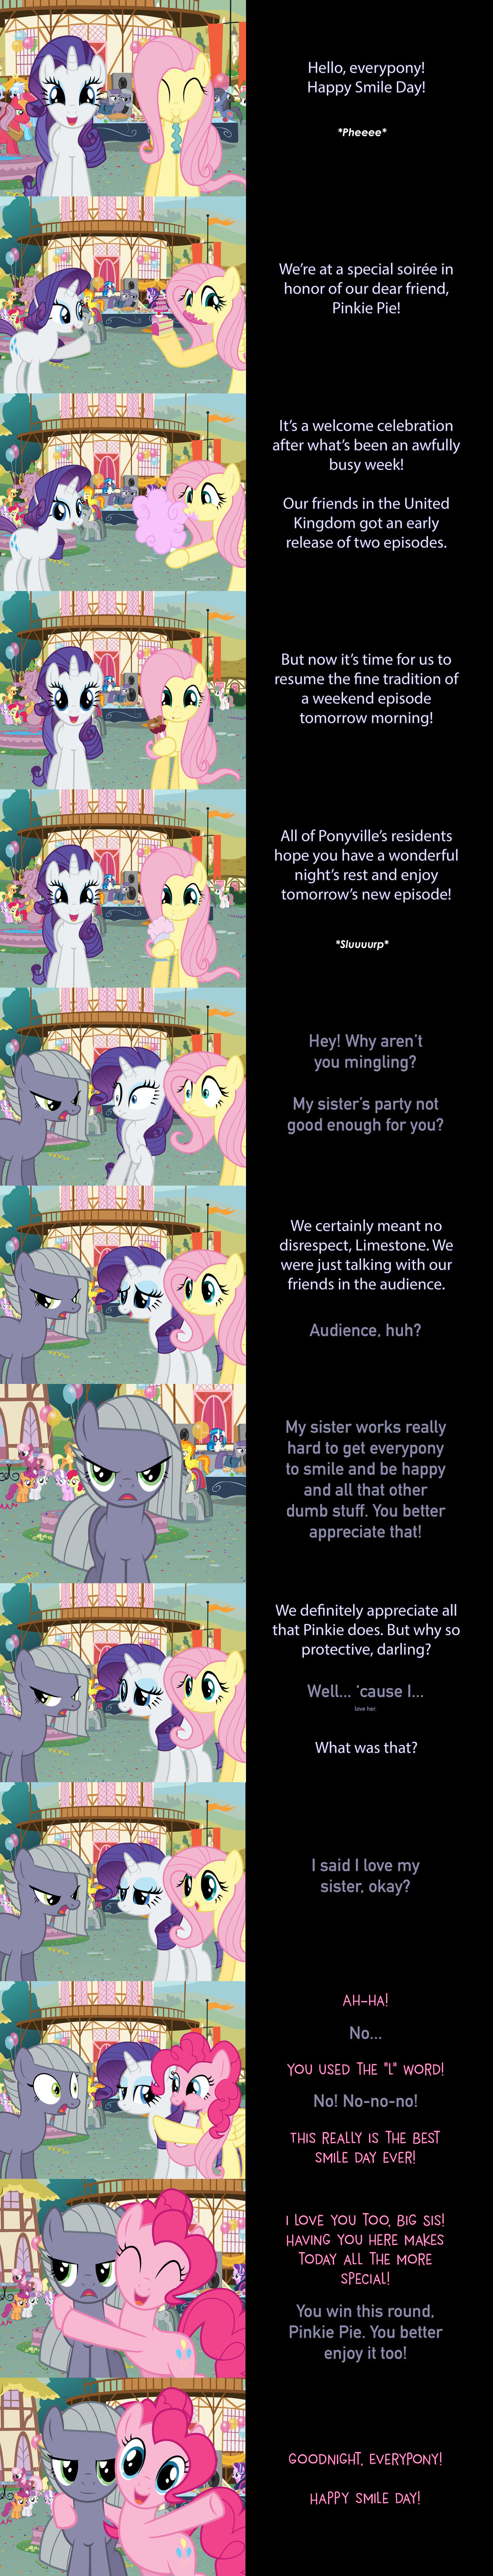 Rarity and Fluttershy Say Goodnight